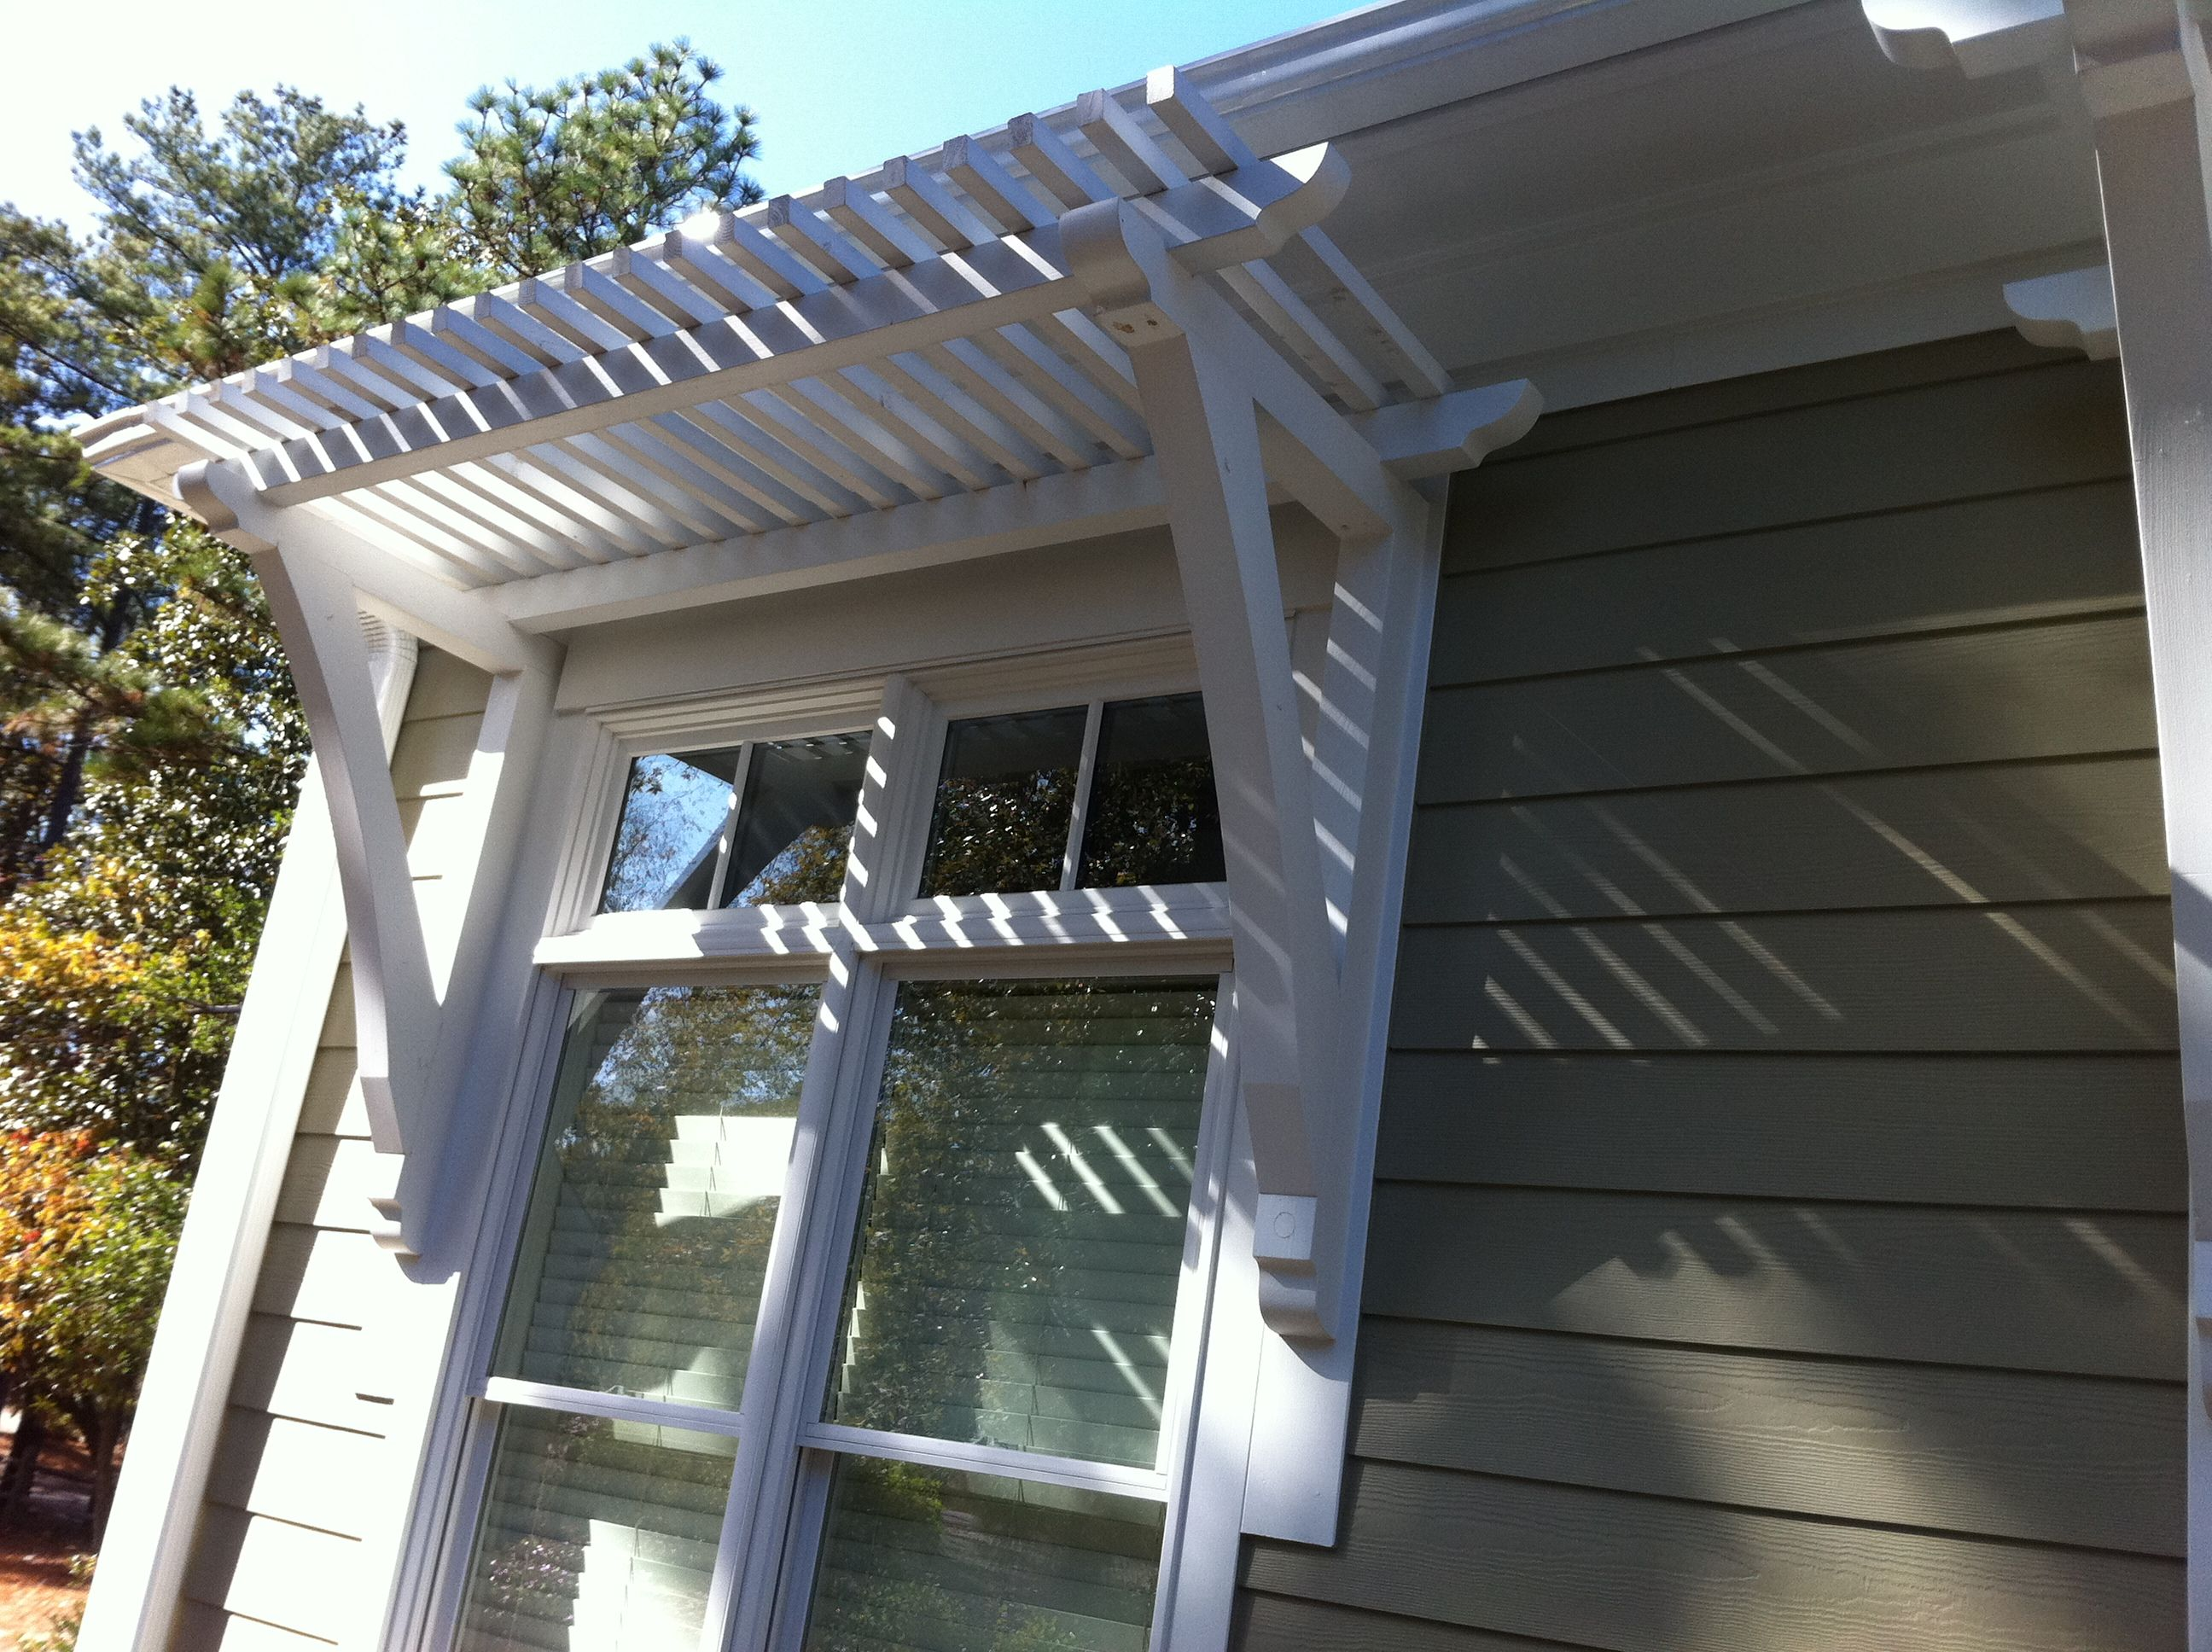 16 best window awnings images on pinterest | window awnings